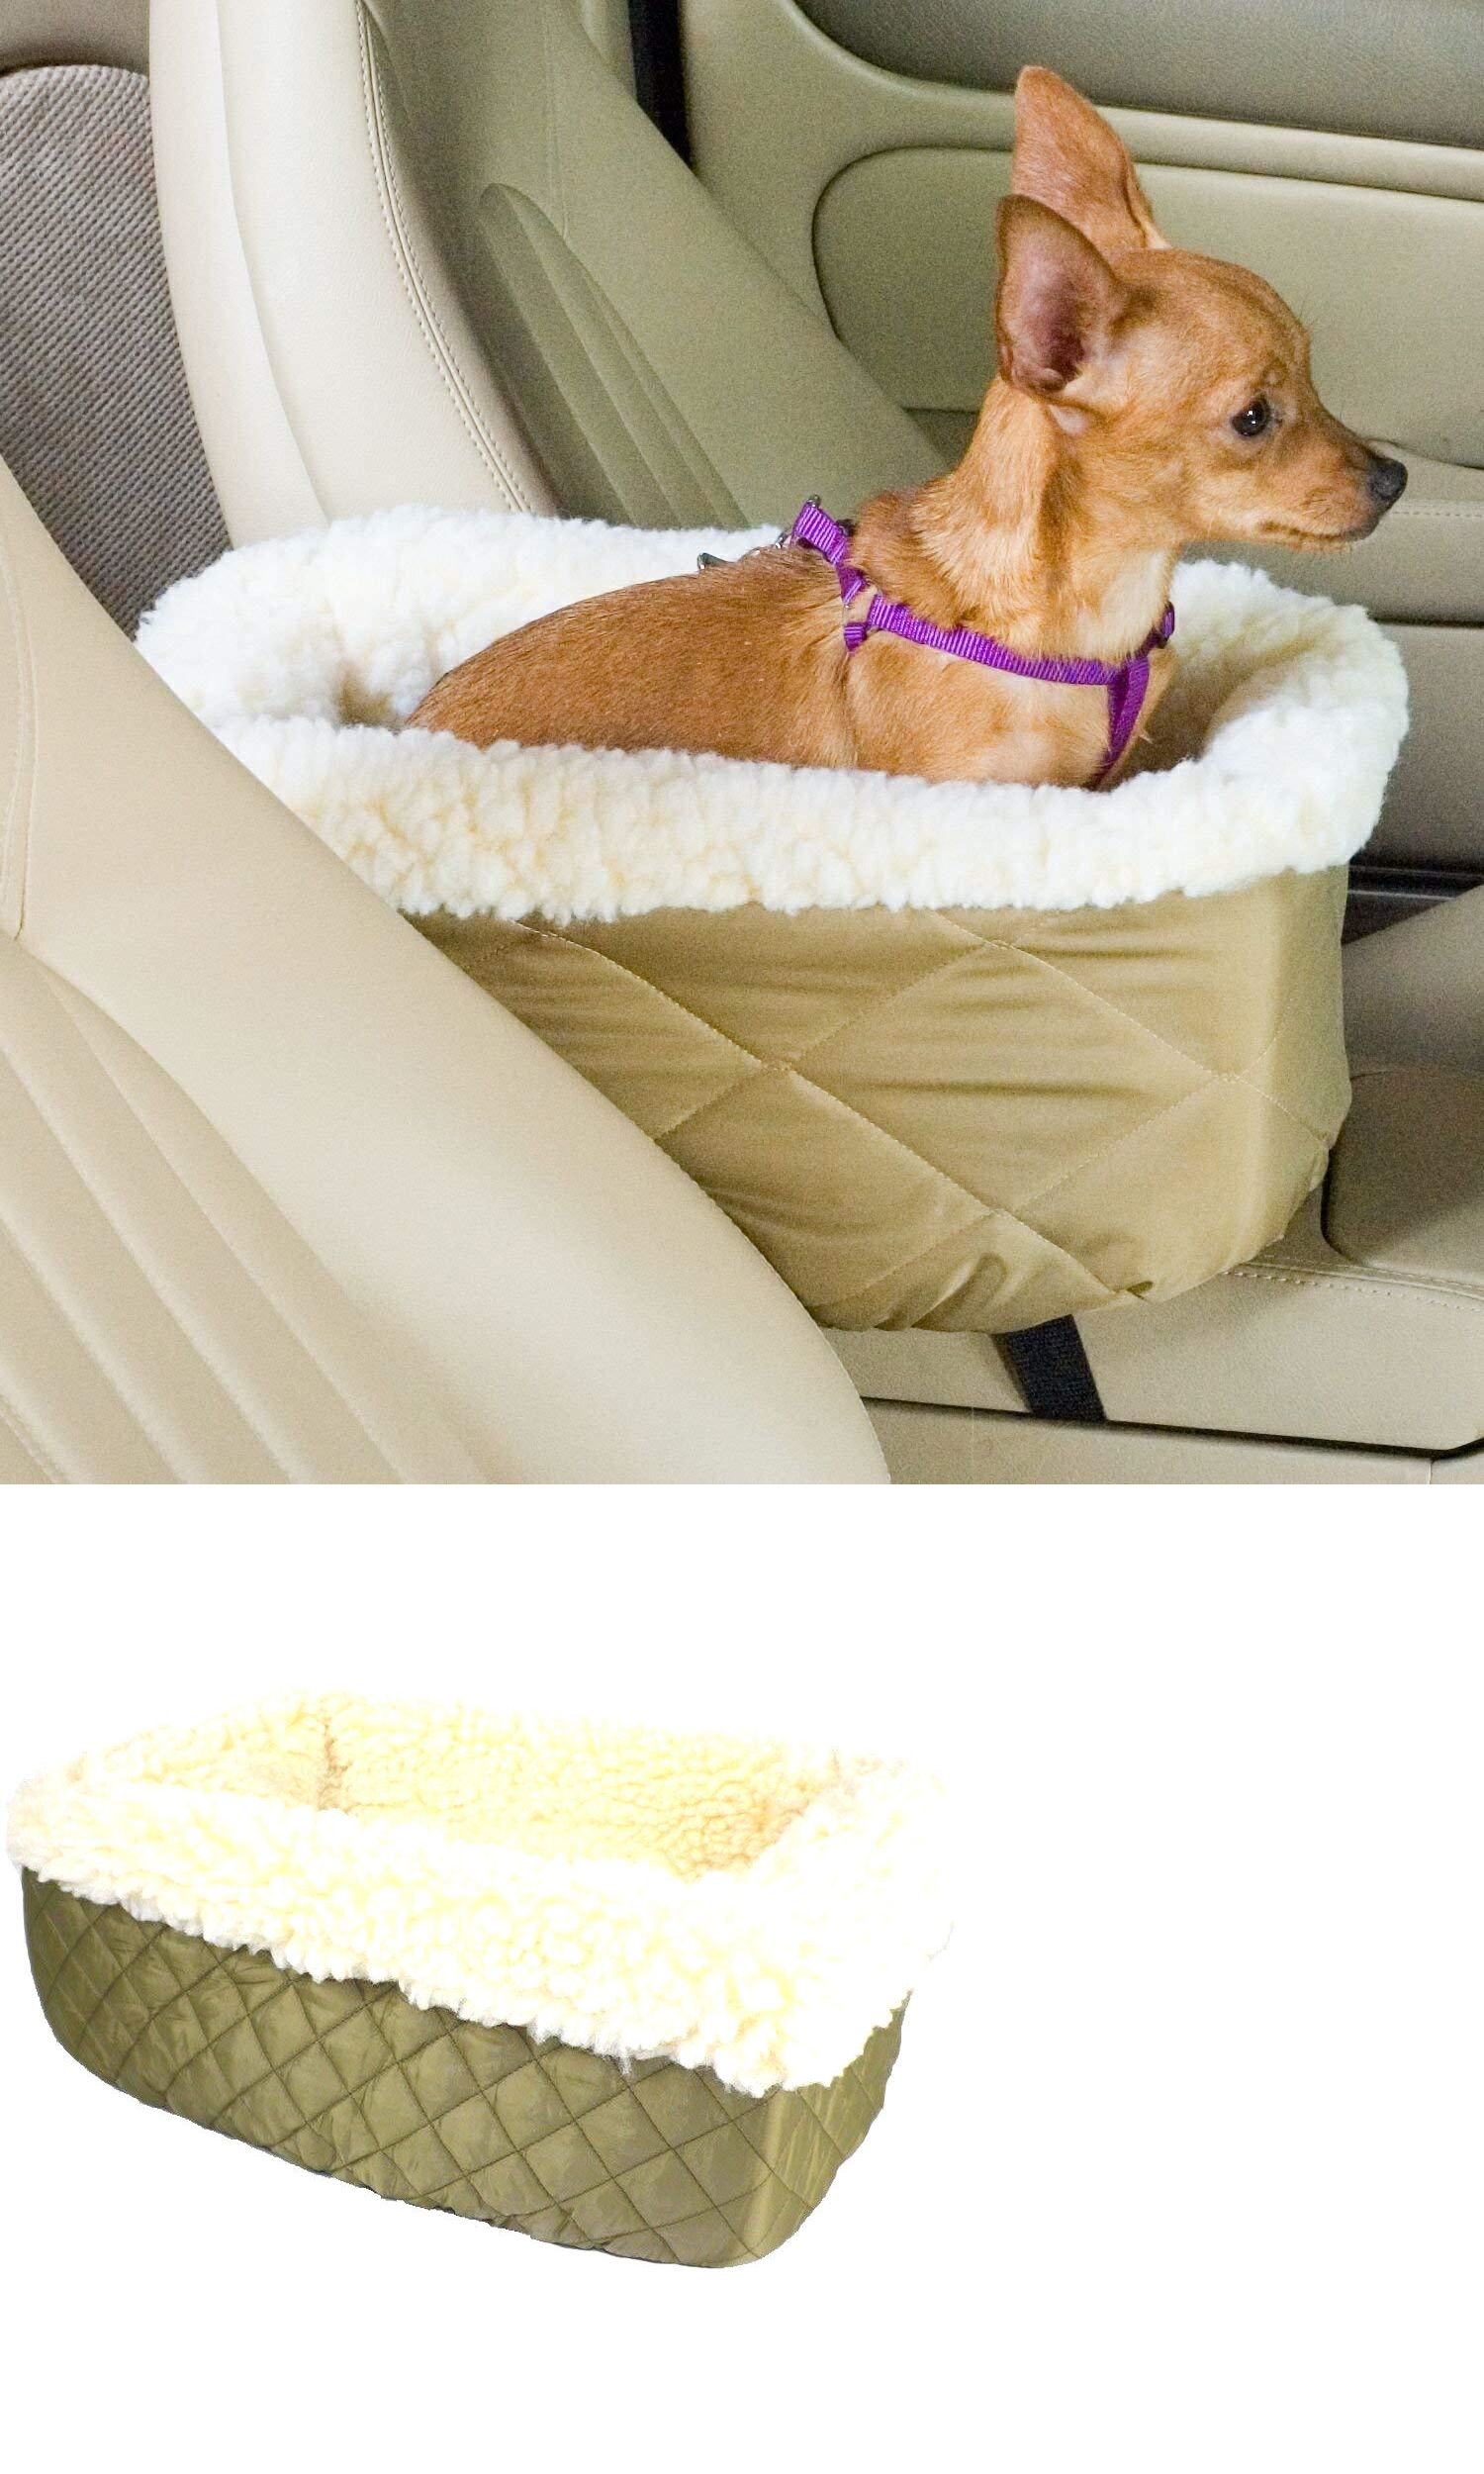 Car Seats And Barriers 46454 Snoozer Lookout Pet Dog Cat Seat Small Khaki Cream Sherpa Booster Bed BUY IT NOW ONLY 25 On EBay